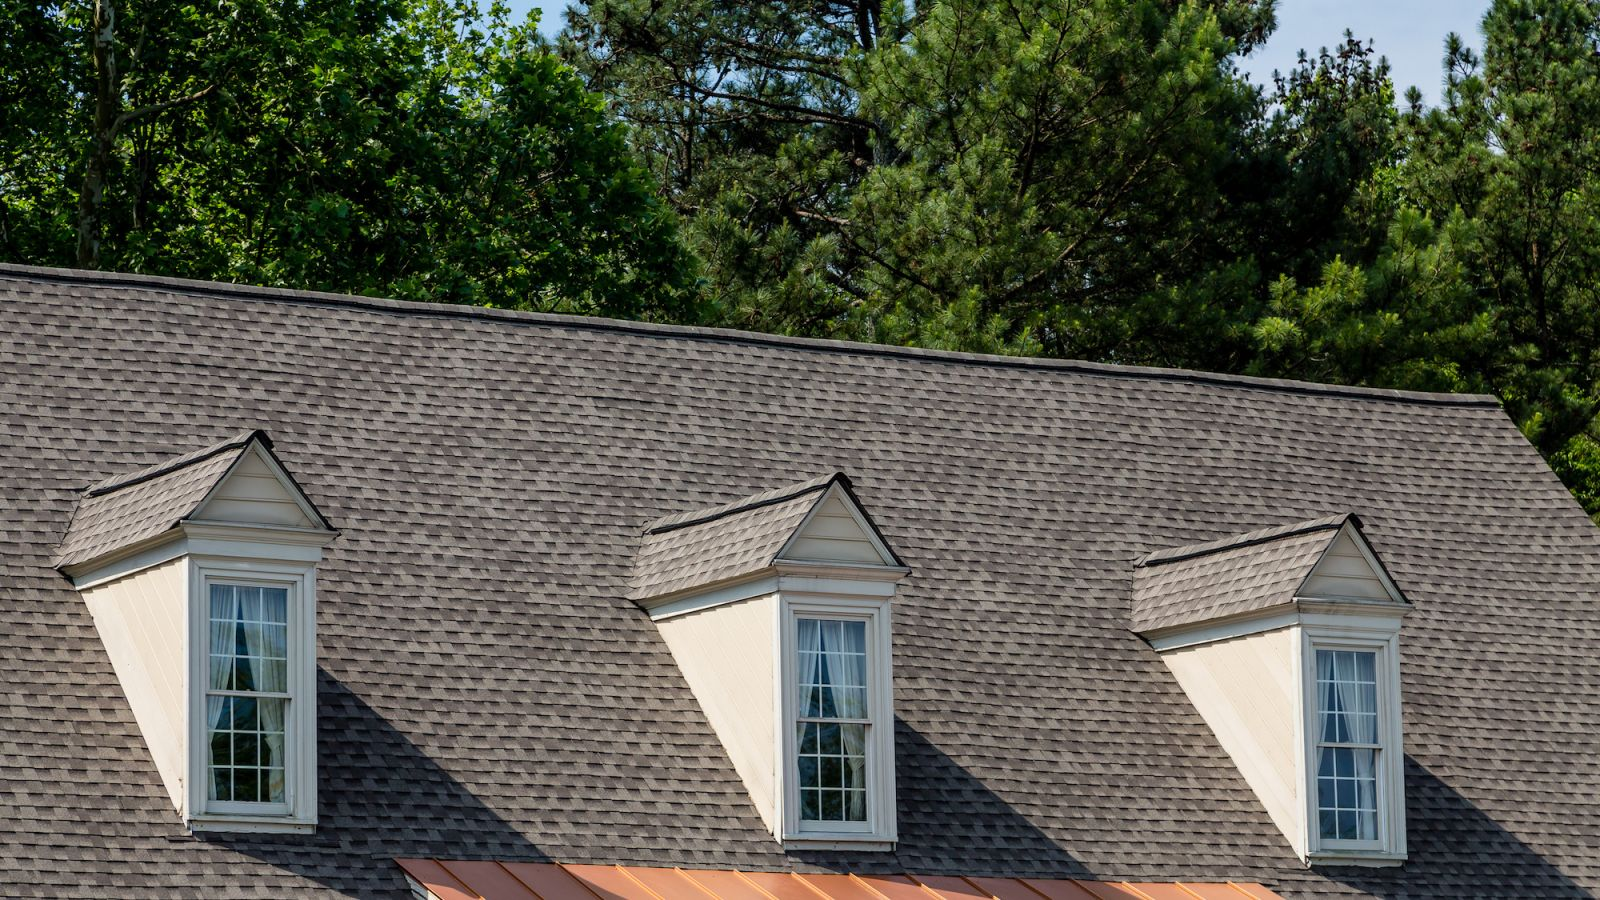 What Causes Nail Pops On A Roof